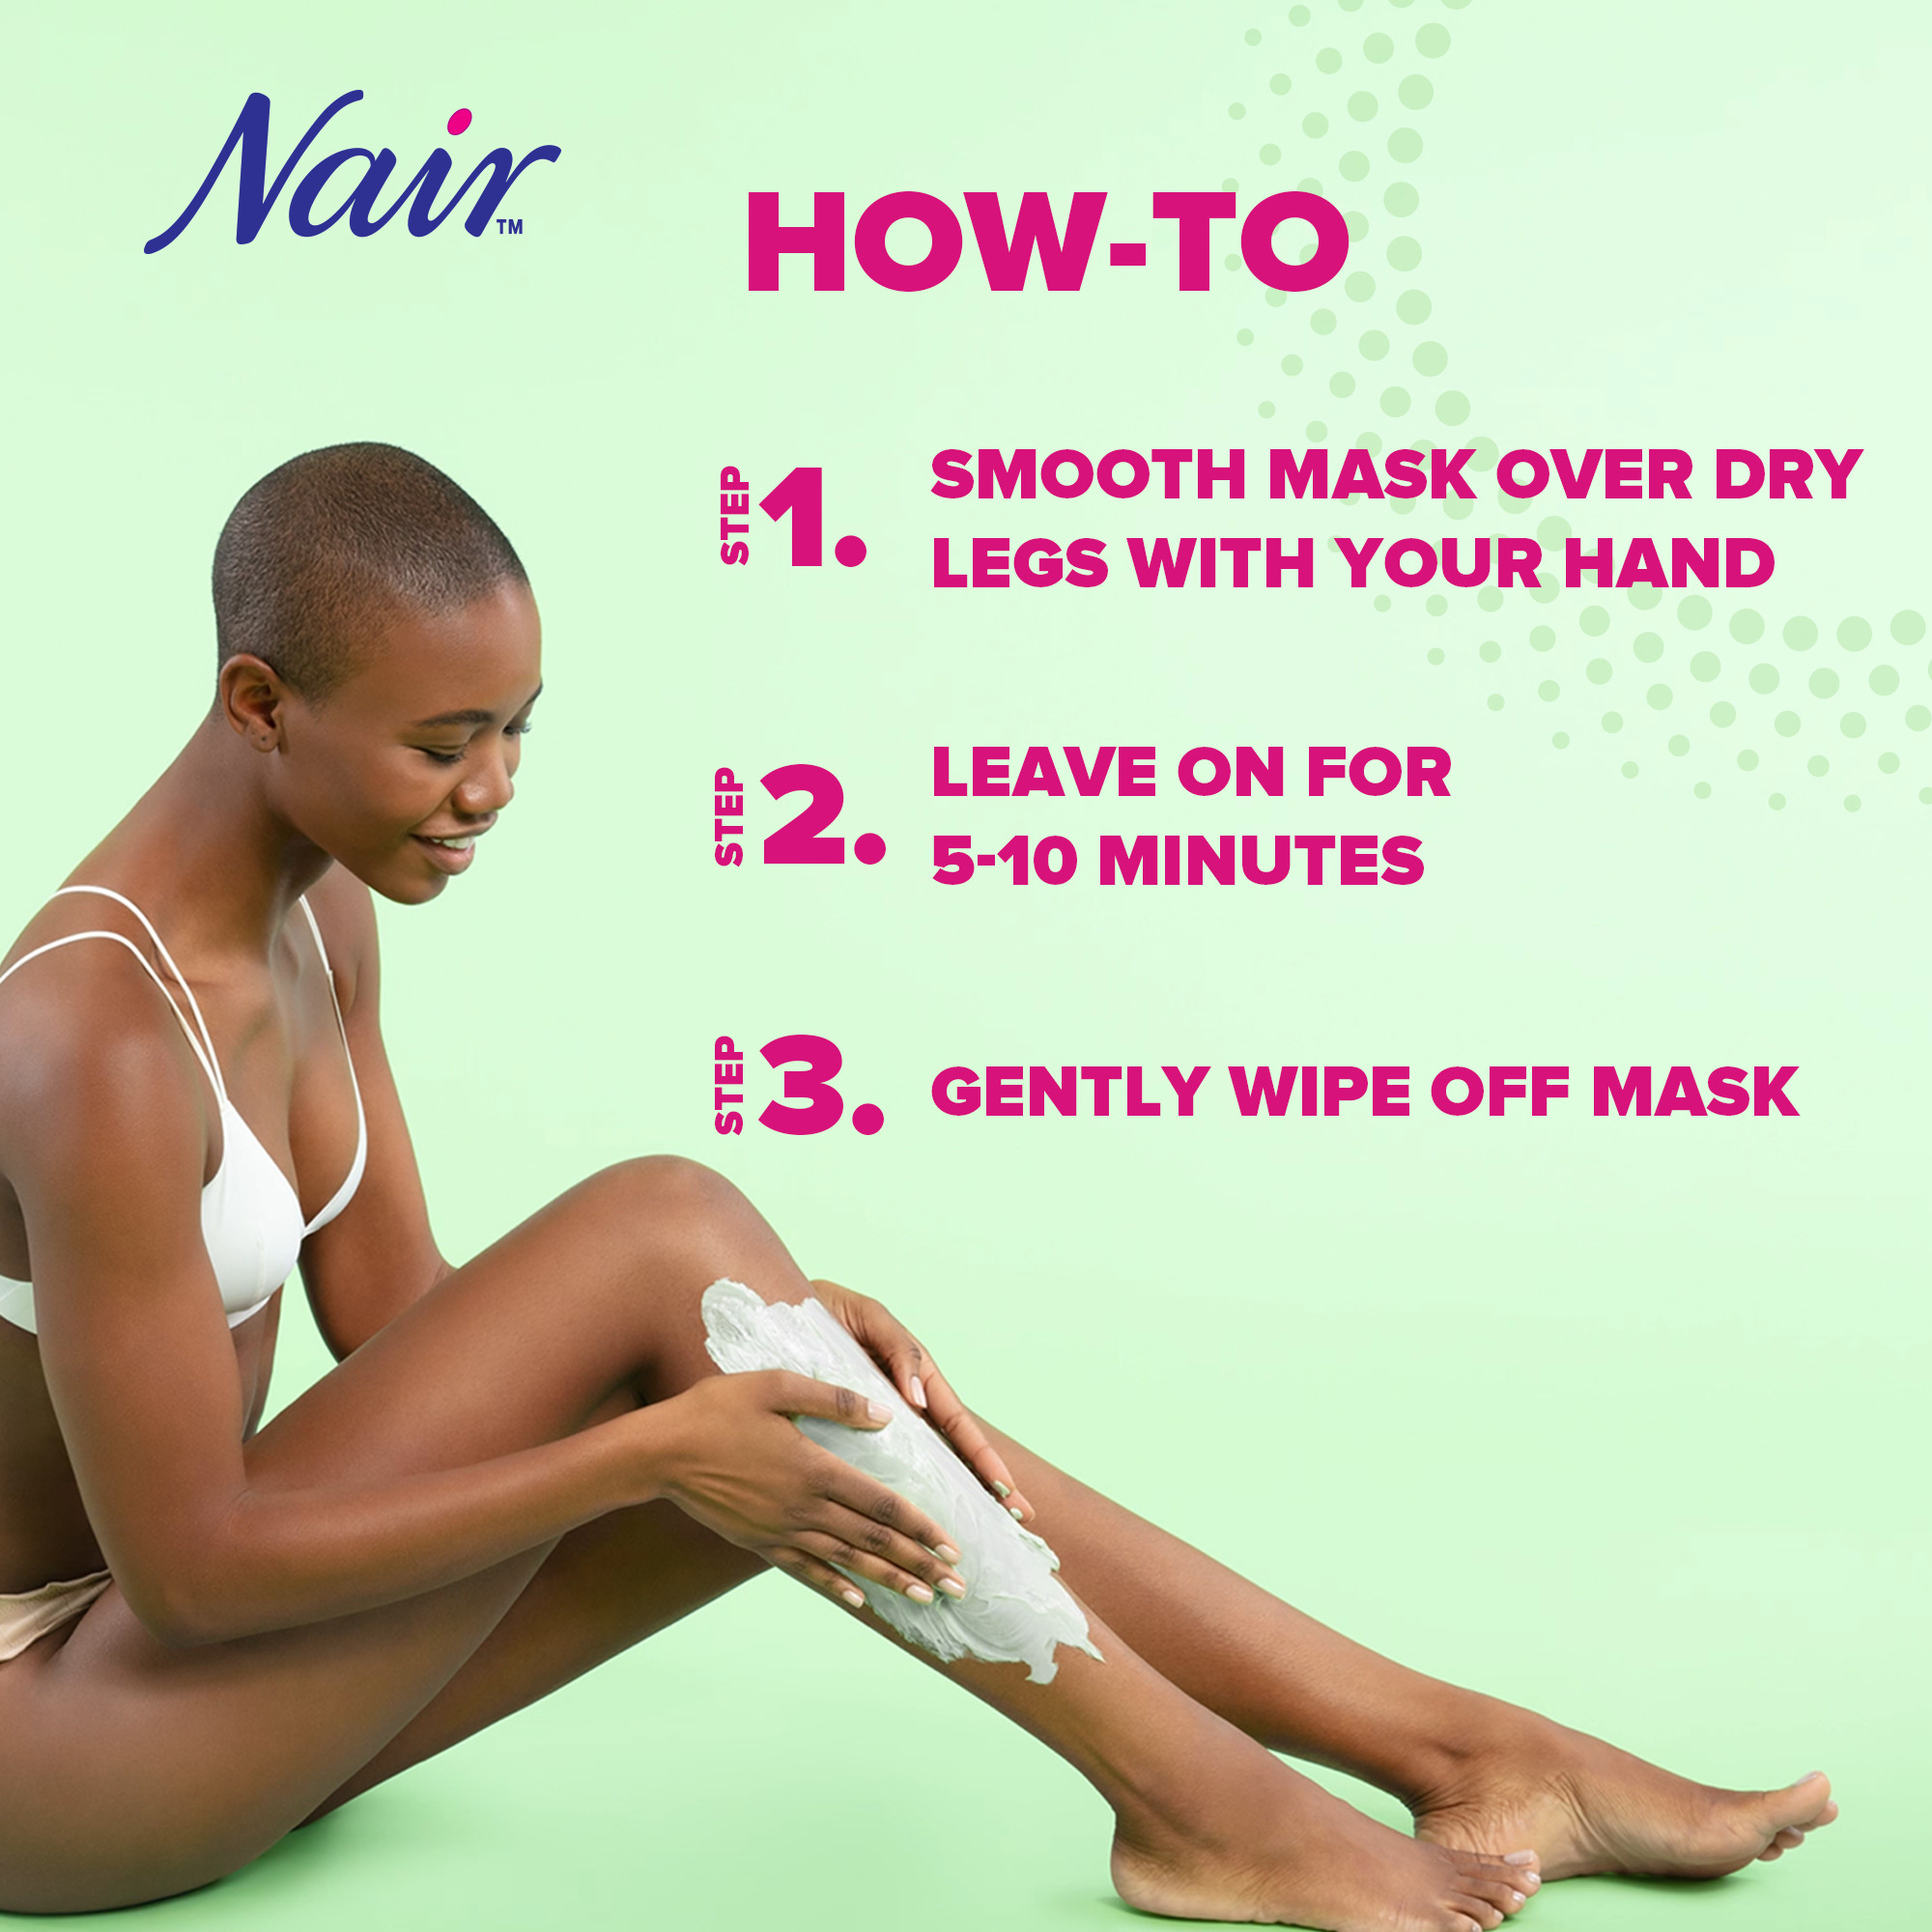 Nair Hair Remover Beauty Treatment Seaweed Leg Mask 8 0oz